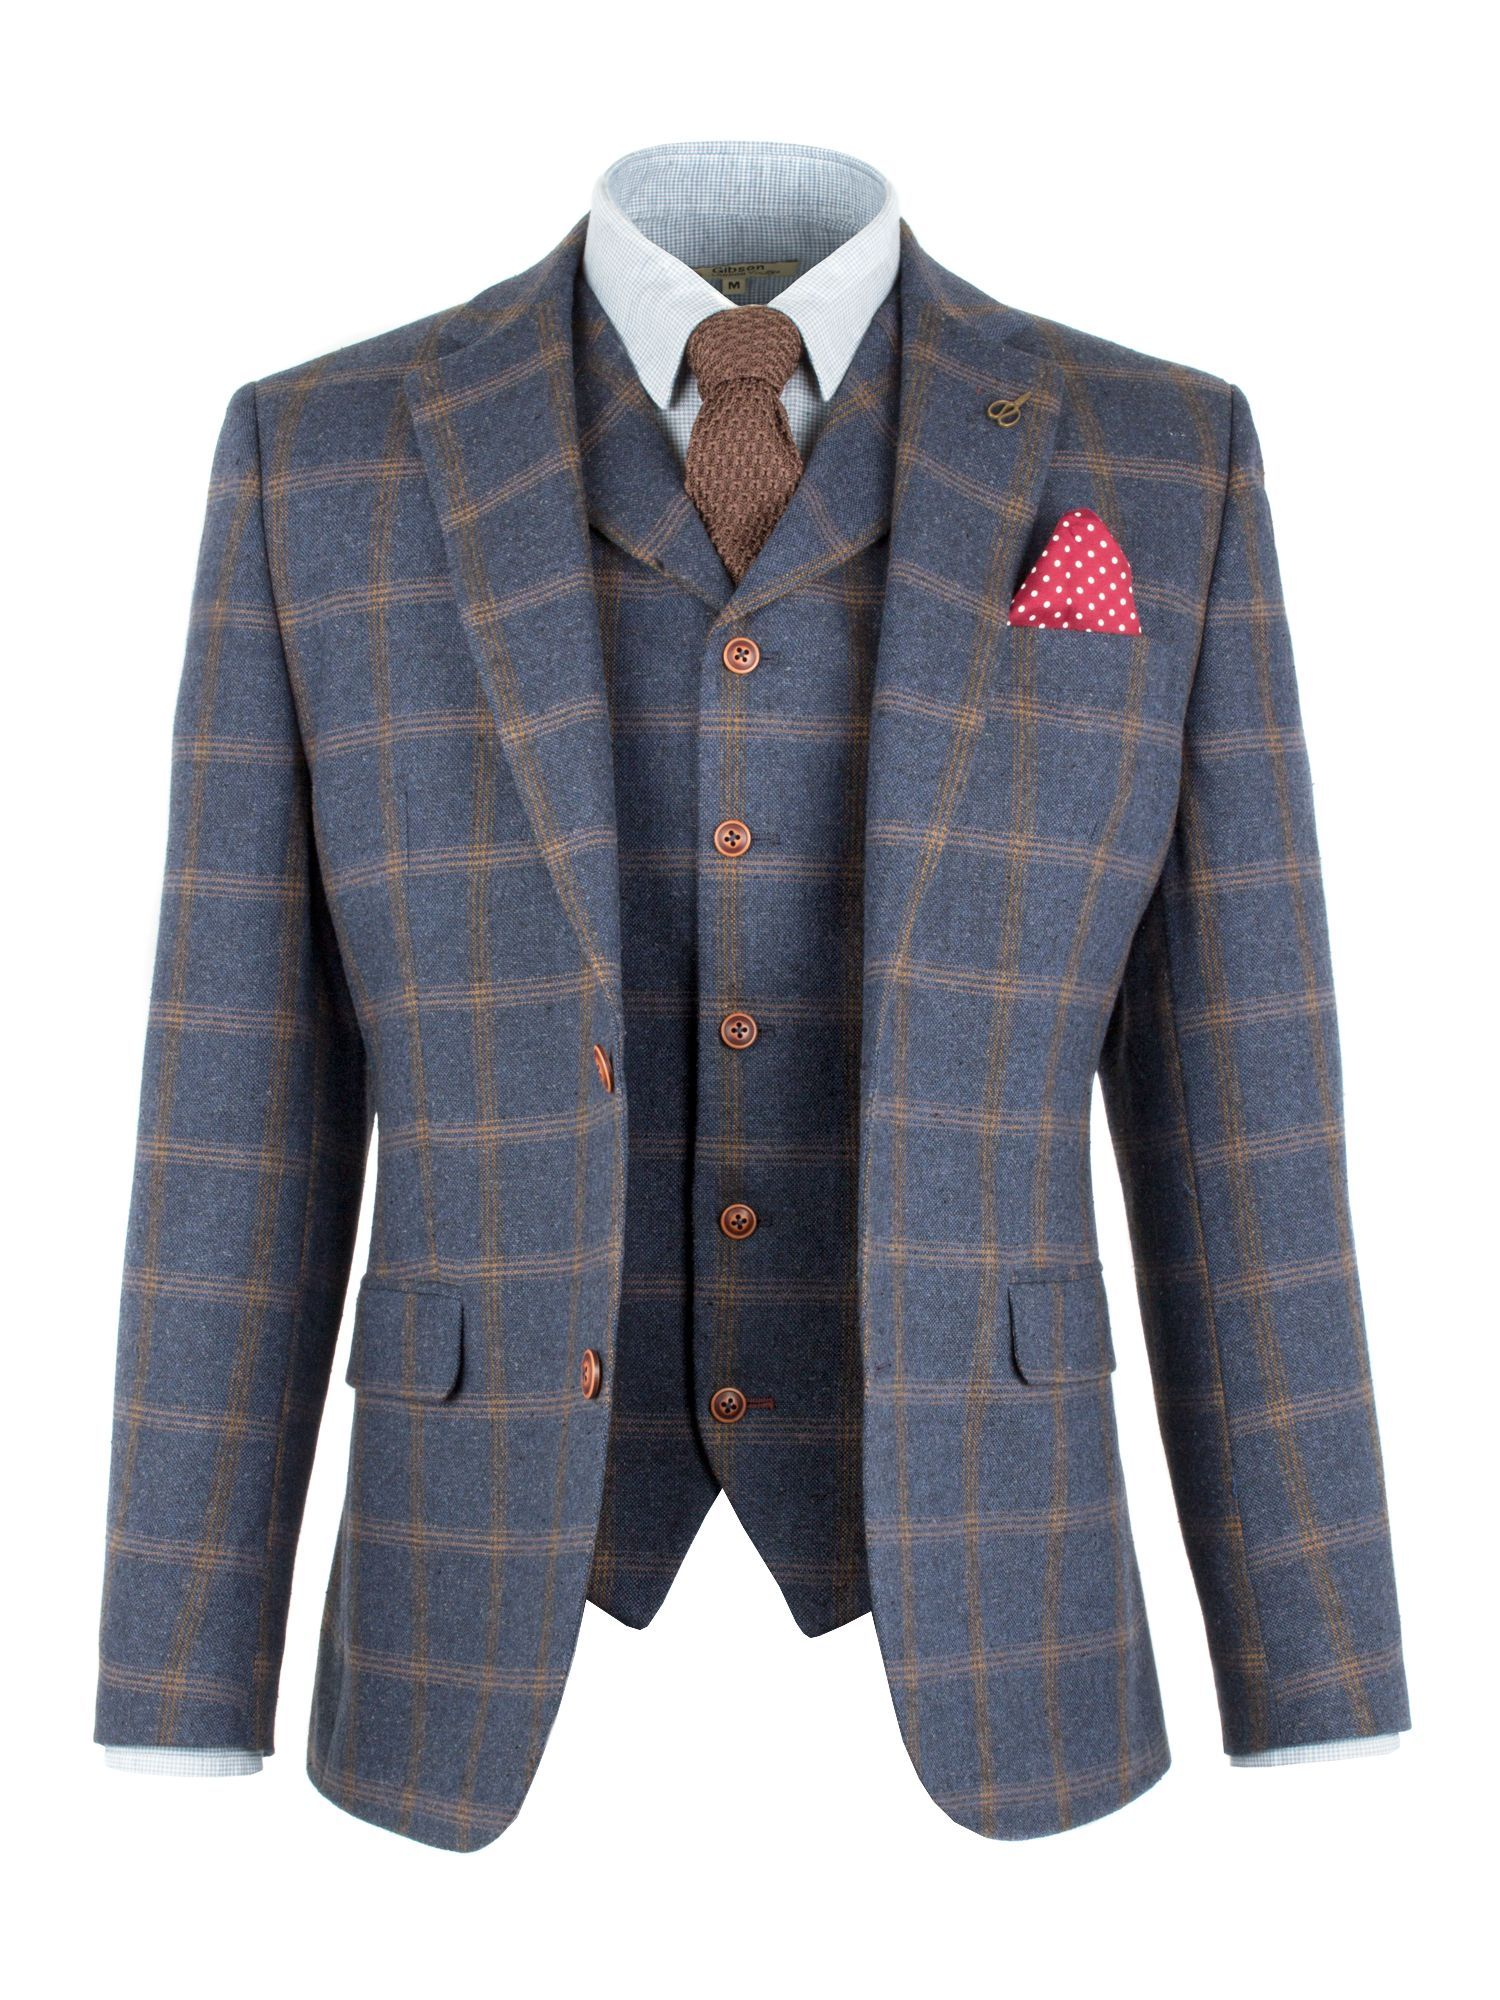 be8c95e9b Buy: Men's Gibson Blue And Tan Check Jacket, Blue for just: £108.00 ...